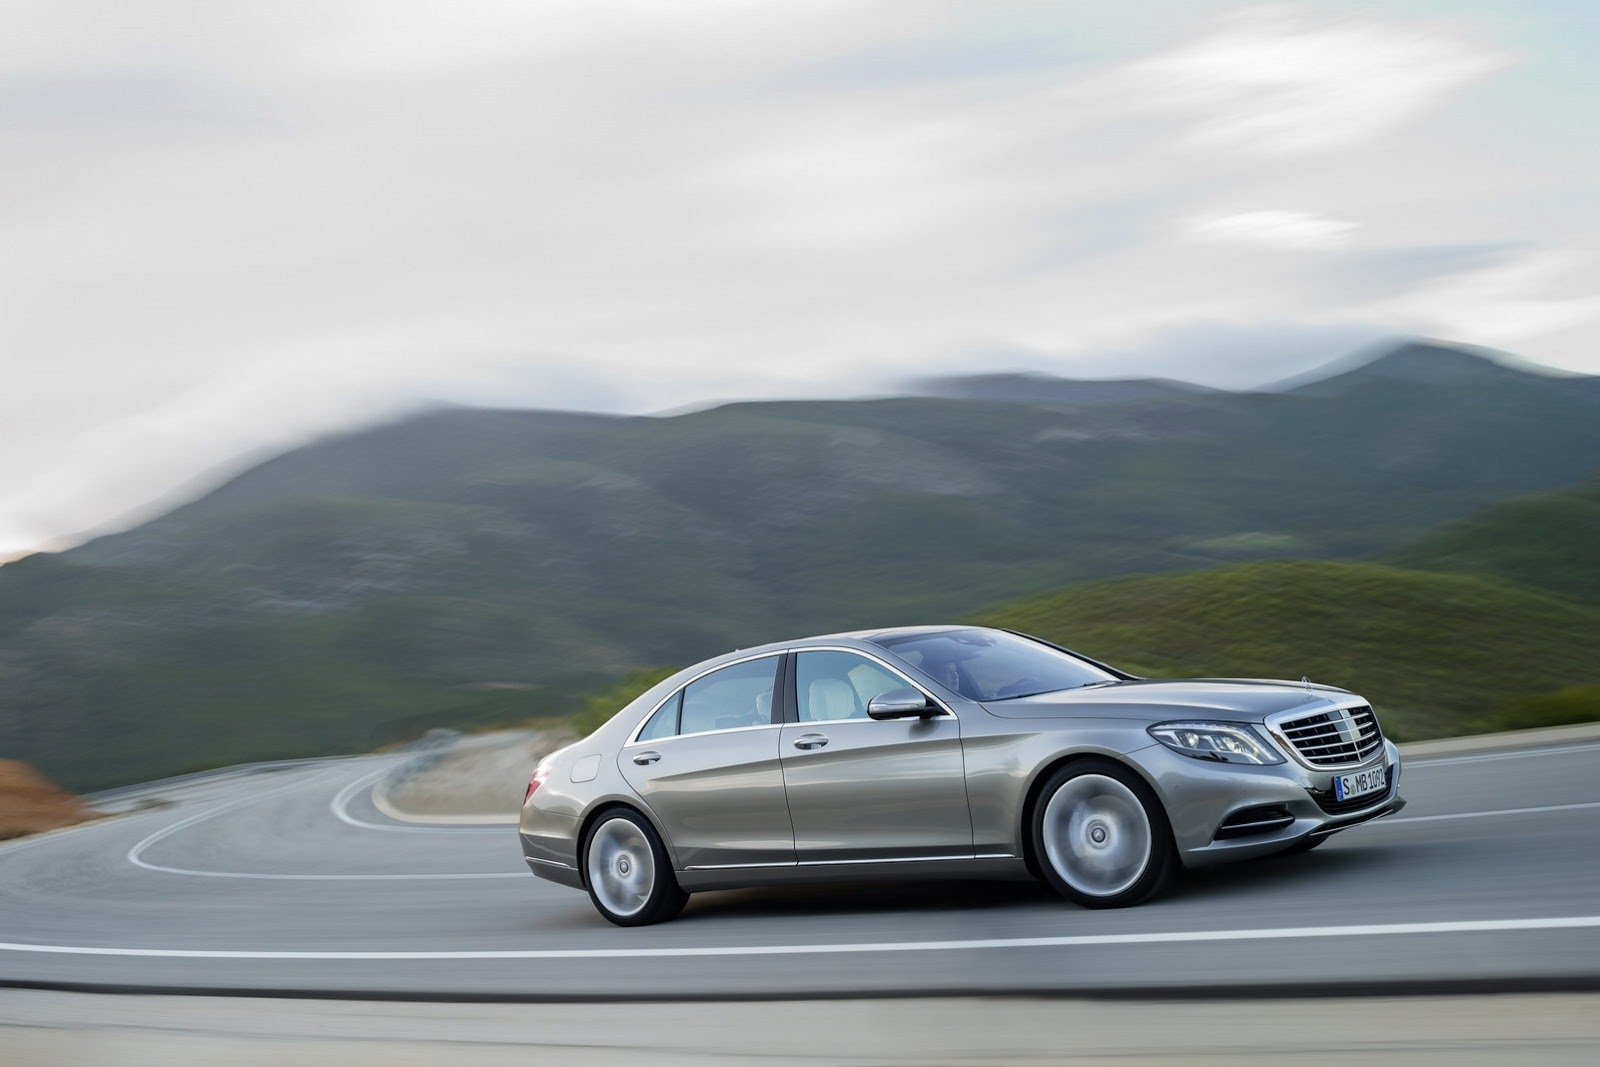 2014 Mercedes Benz S-Class - SMADE MEDIA (38)